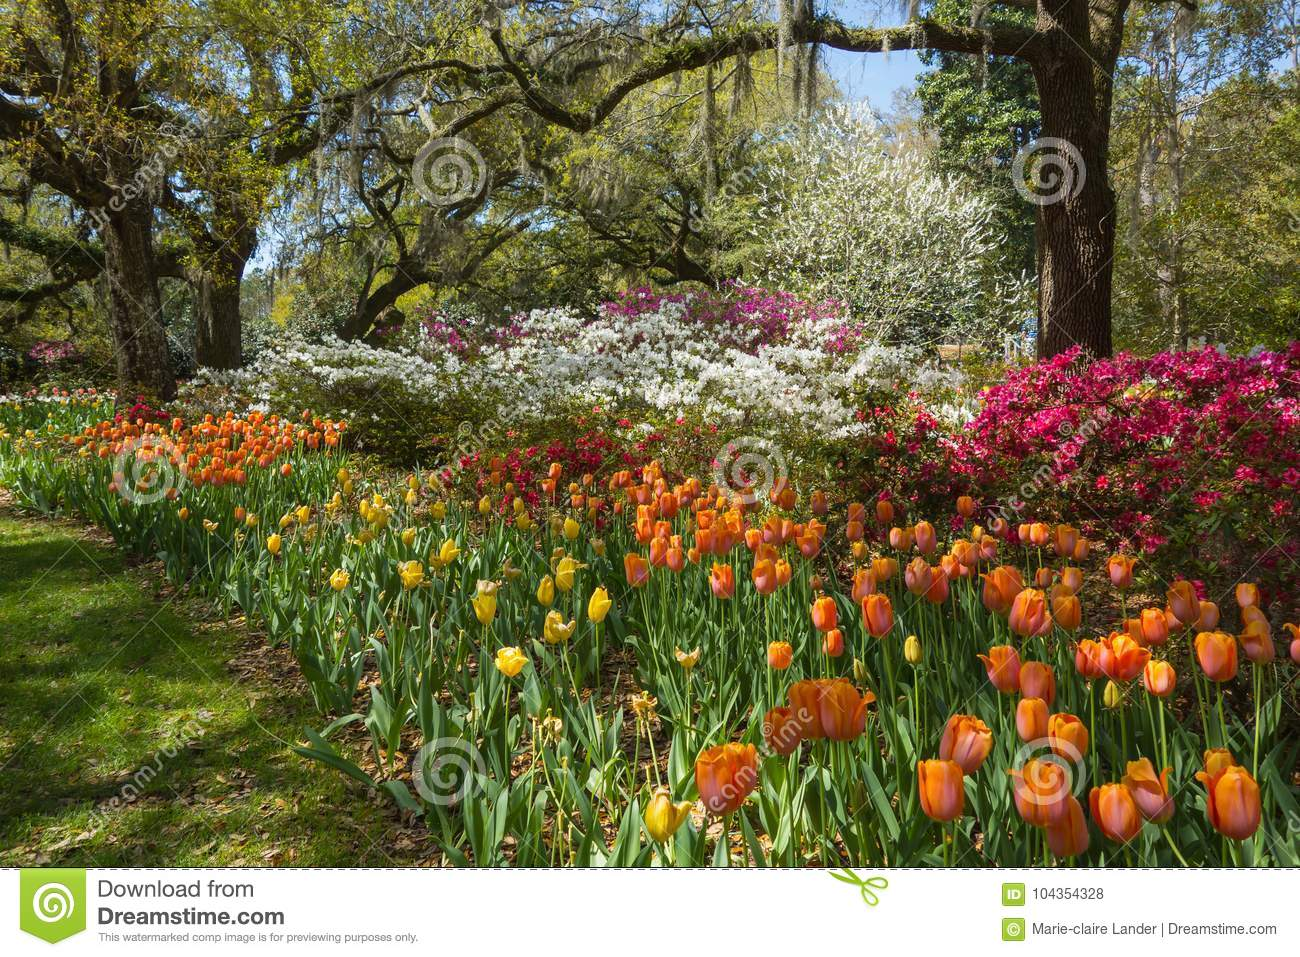 Spring Tulip Bed In Southern Garden Stock Photo - Image of tulips ...